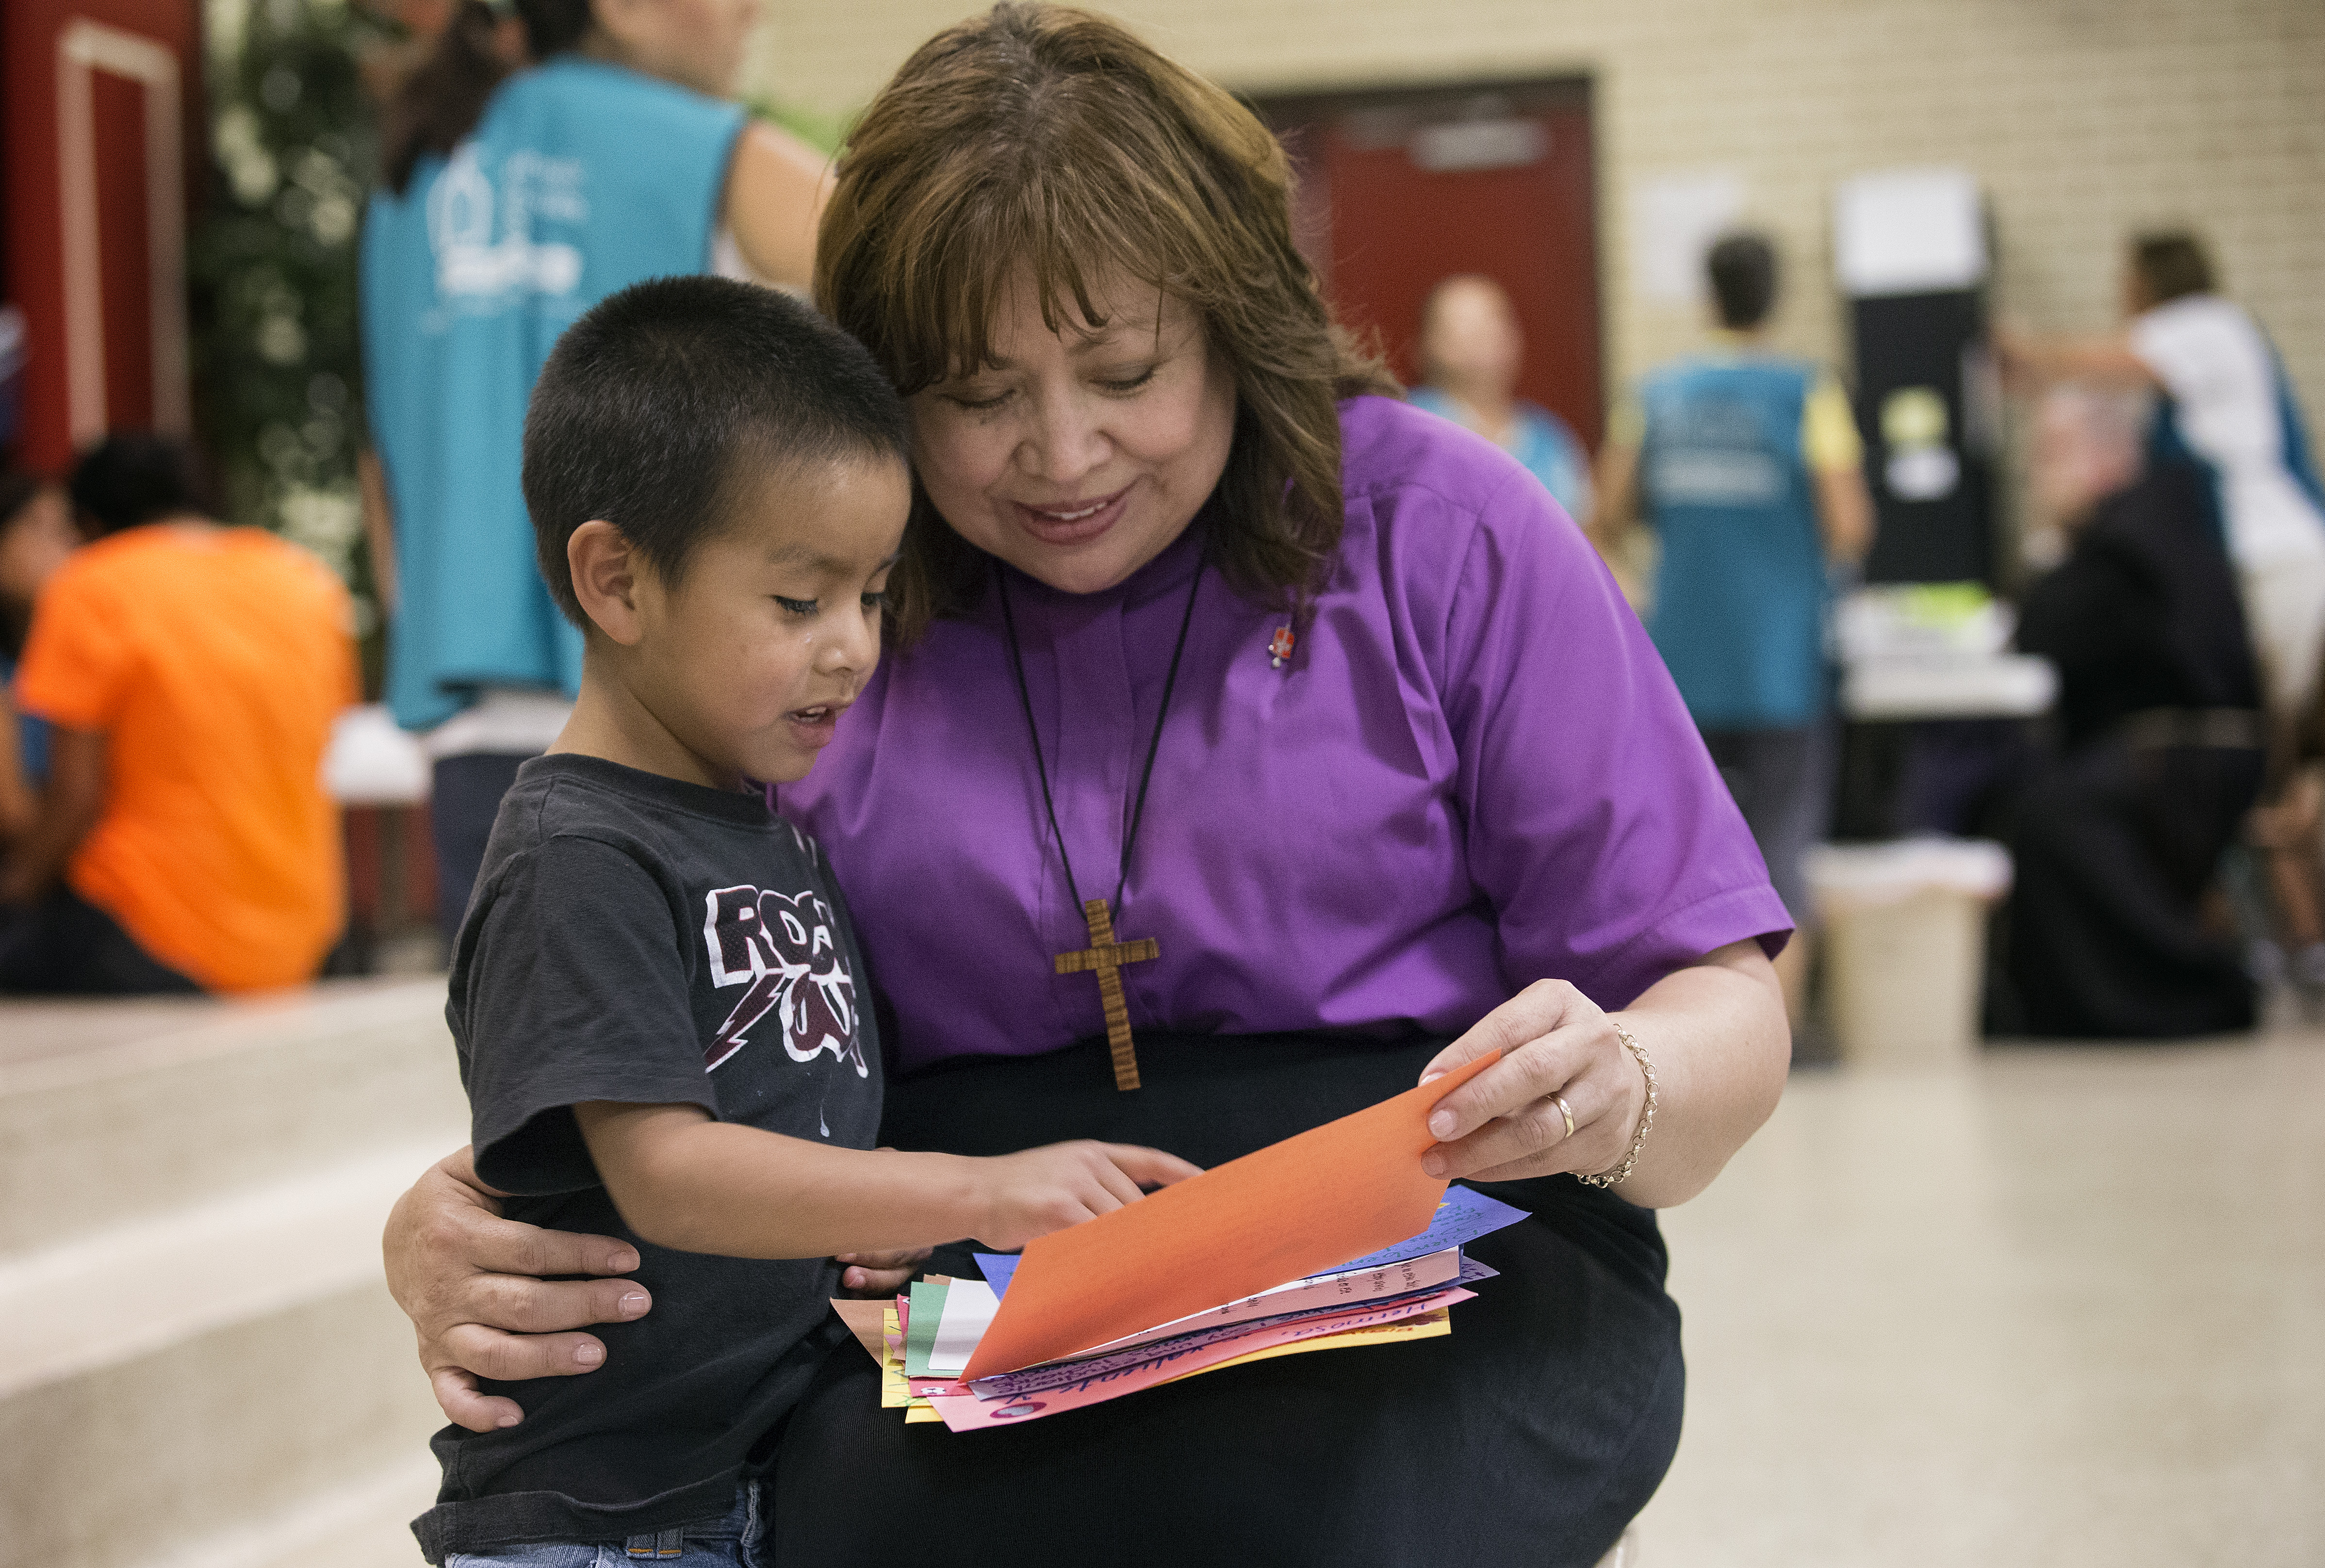 United Methodist Bishop Minerva Carcaño (right) shares letters of encouragement with Regino Enrique at the immigrant welcome center at Sacred Heart Catholic Church in McAllen, Texas, in August 2014. The 5-year-old and his mother, Macaria, arrived from Guatemala after a month-long journey. File photo by Mike DuBose, UMNS